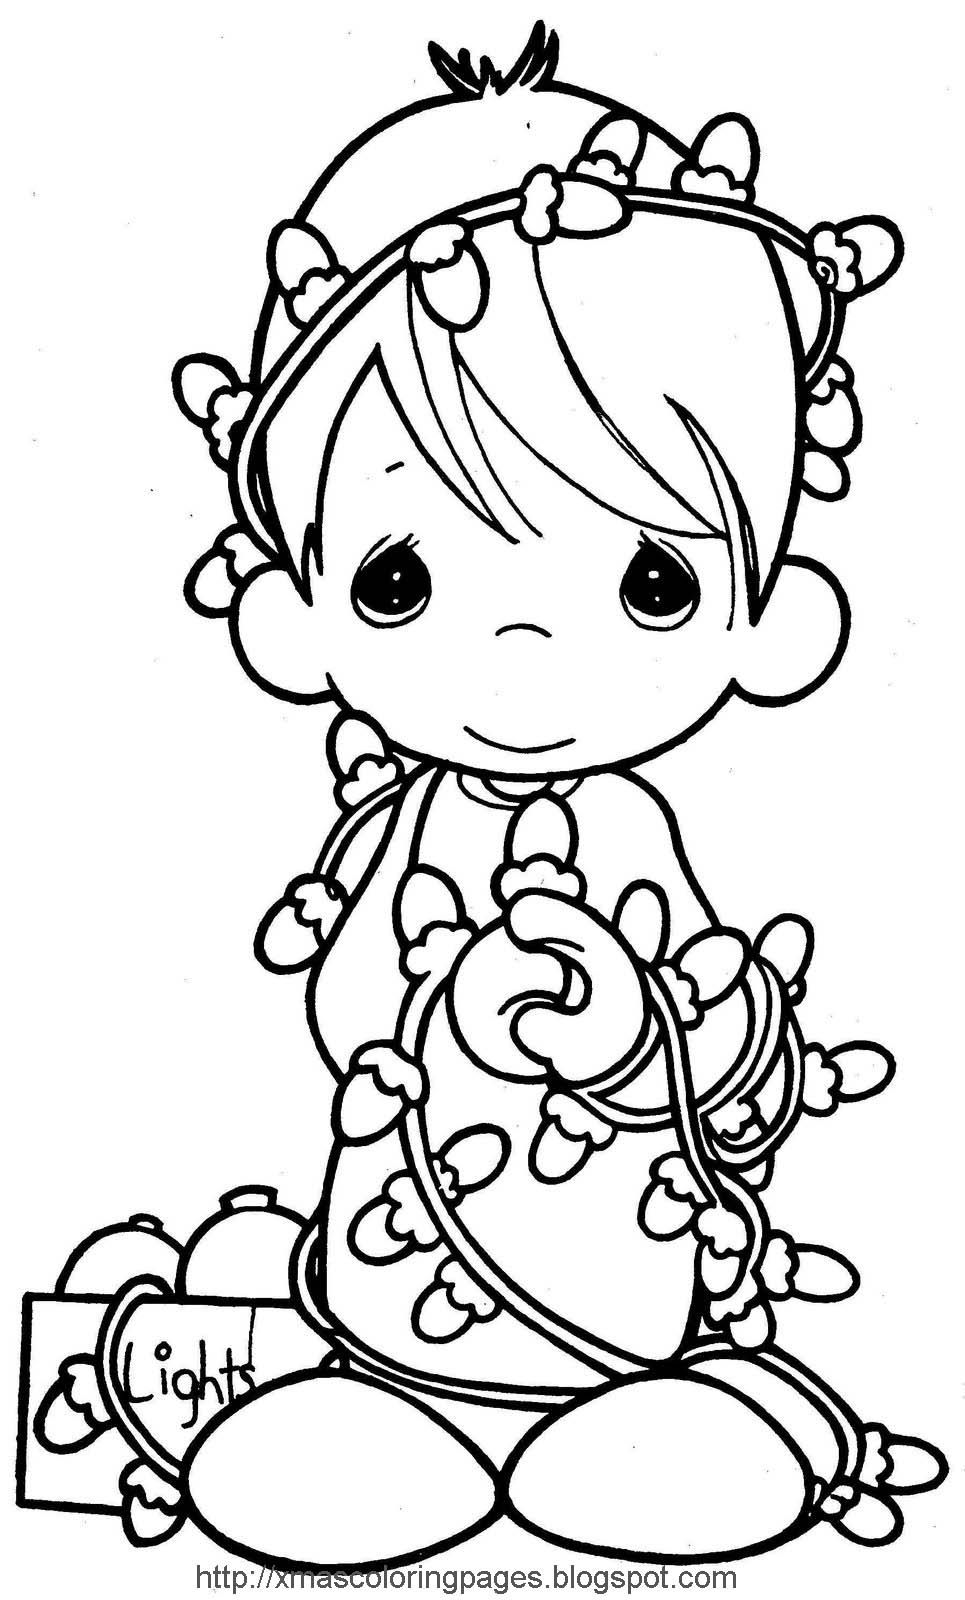 Site with hundreds of free, printable Xmas coloring pages here ...